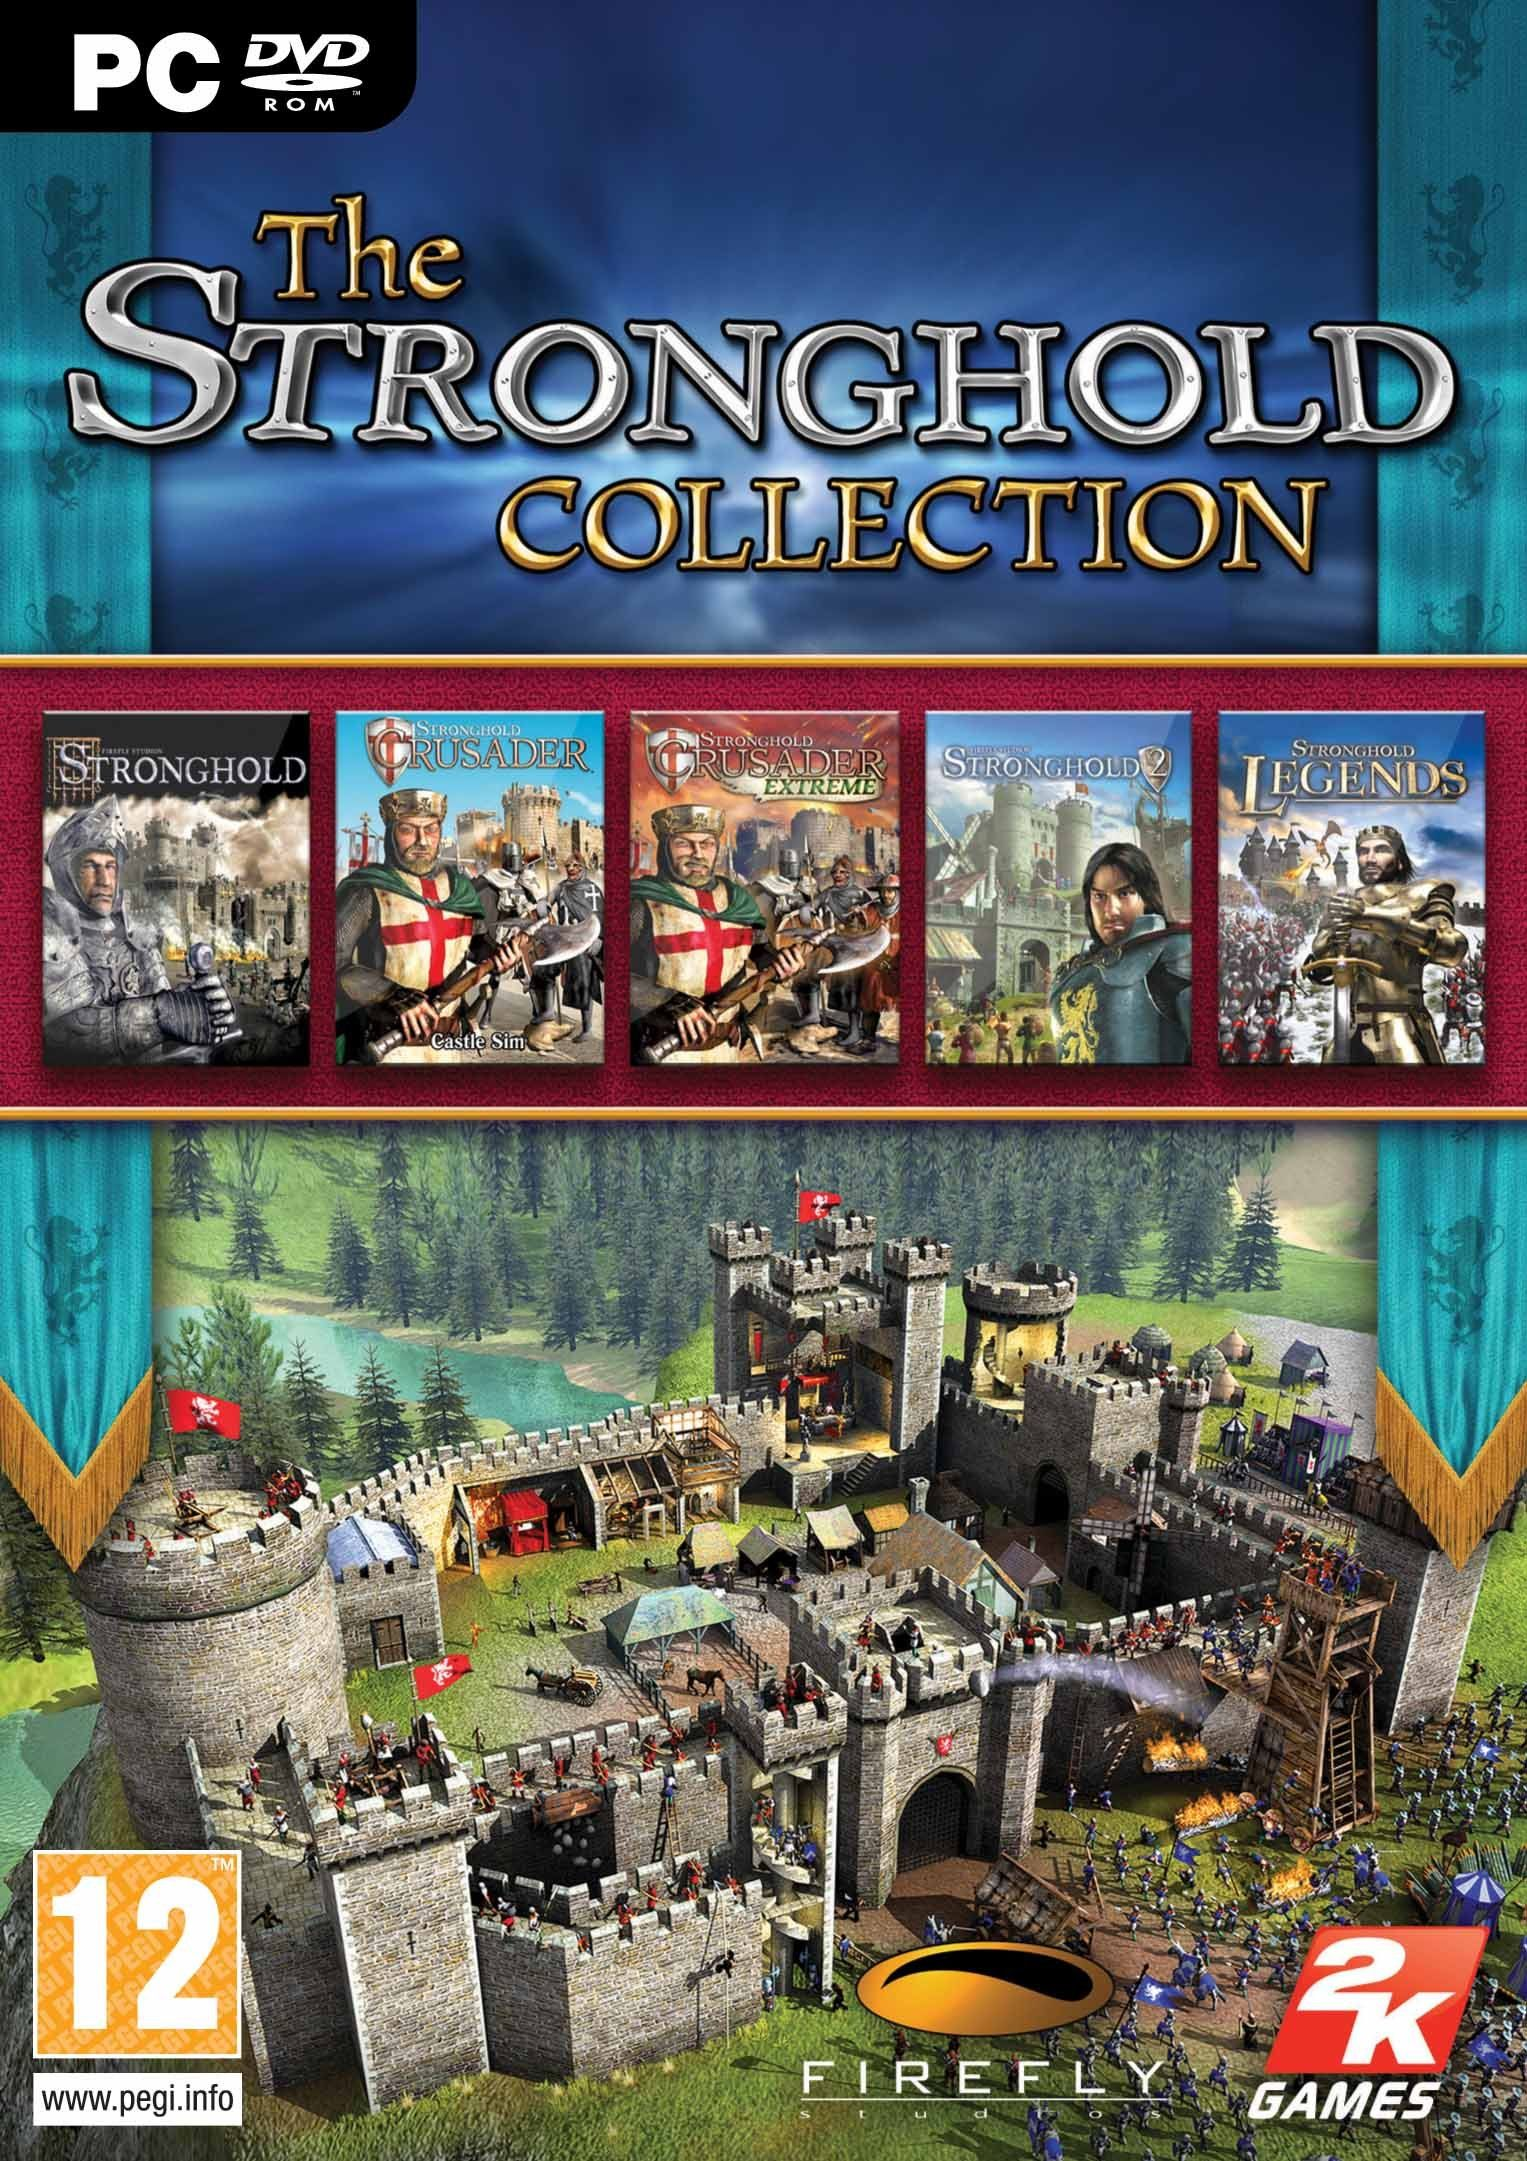 The Stronghold Collection (PC DVD) Amazon.co.uk PC